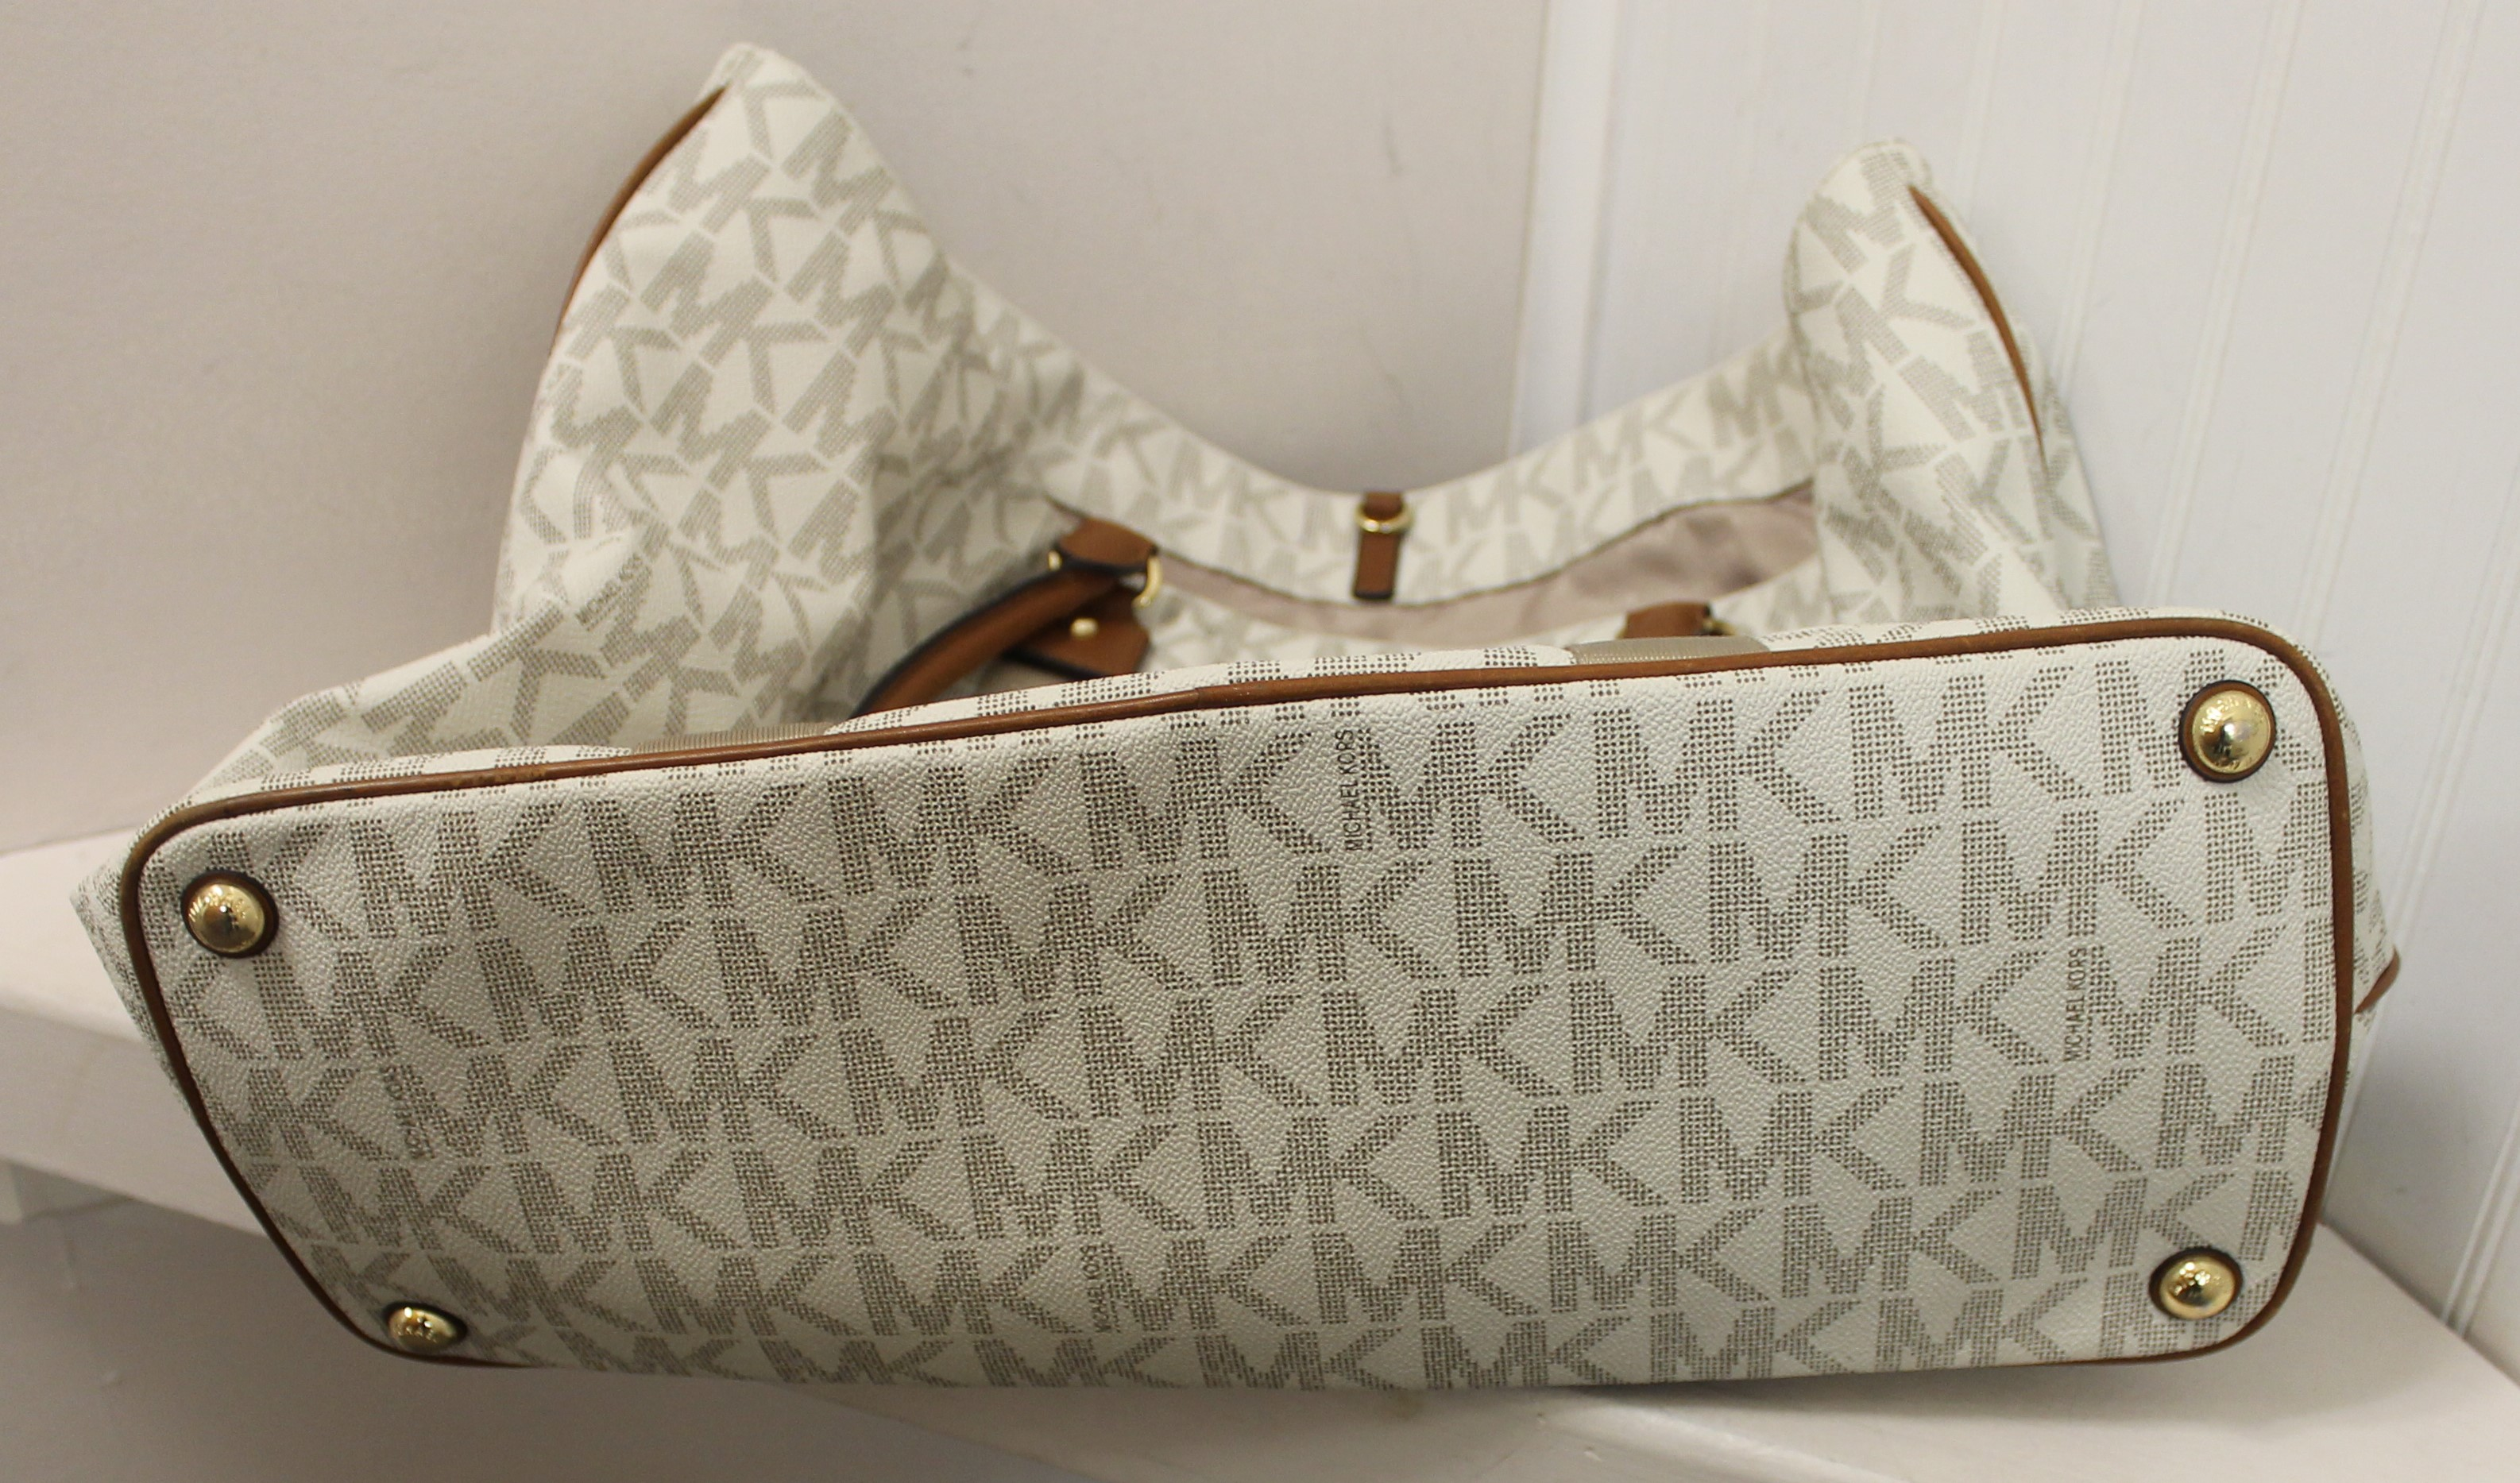 MICHAEL-KORS-WHITE-BROWN-GRAY-LEATHER-AND-CANVAS-LOGO-TOTE_69120H.jpg